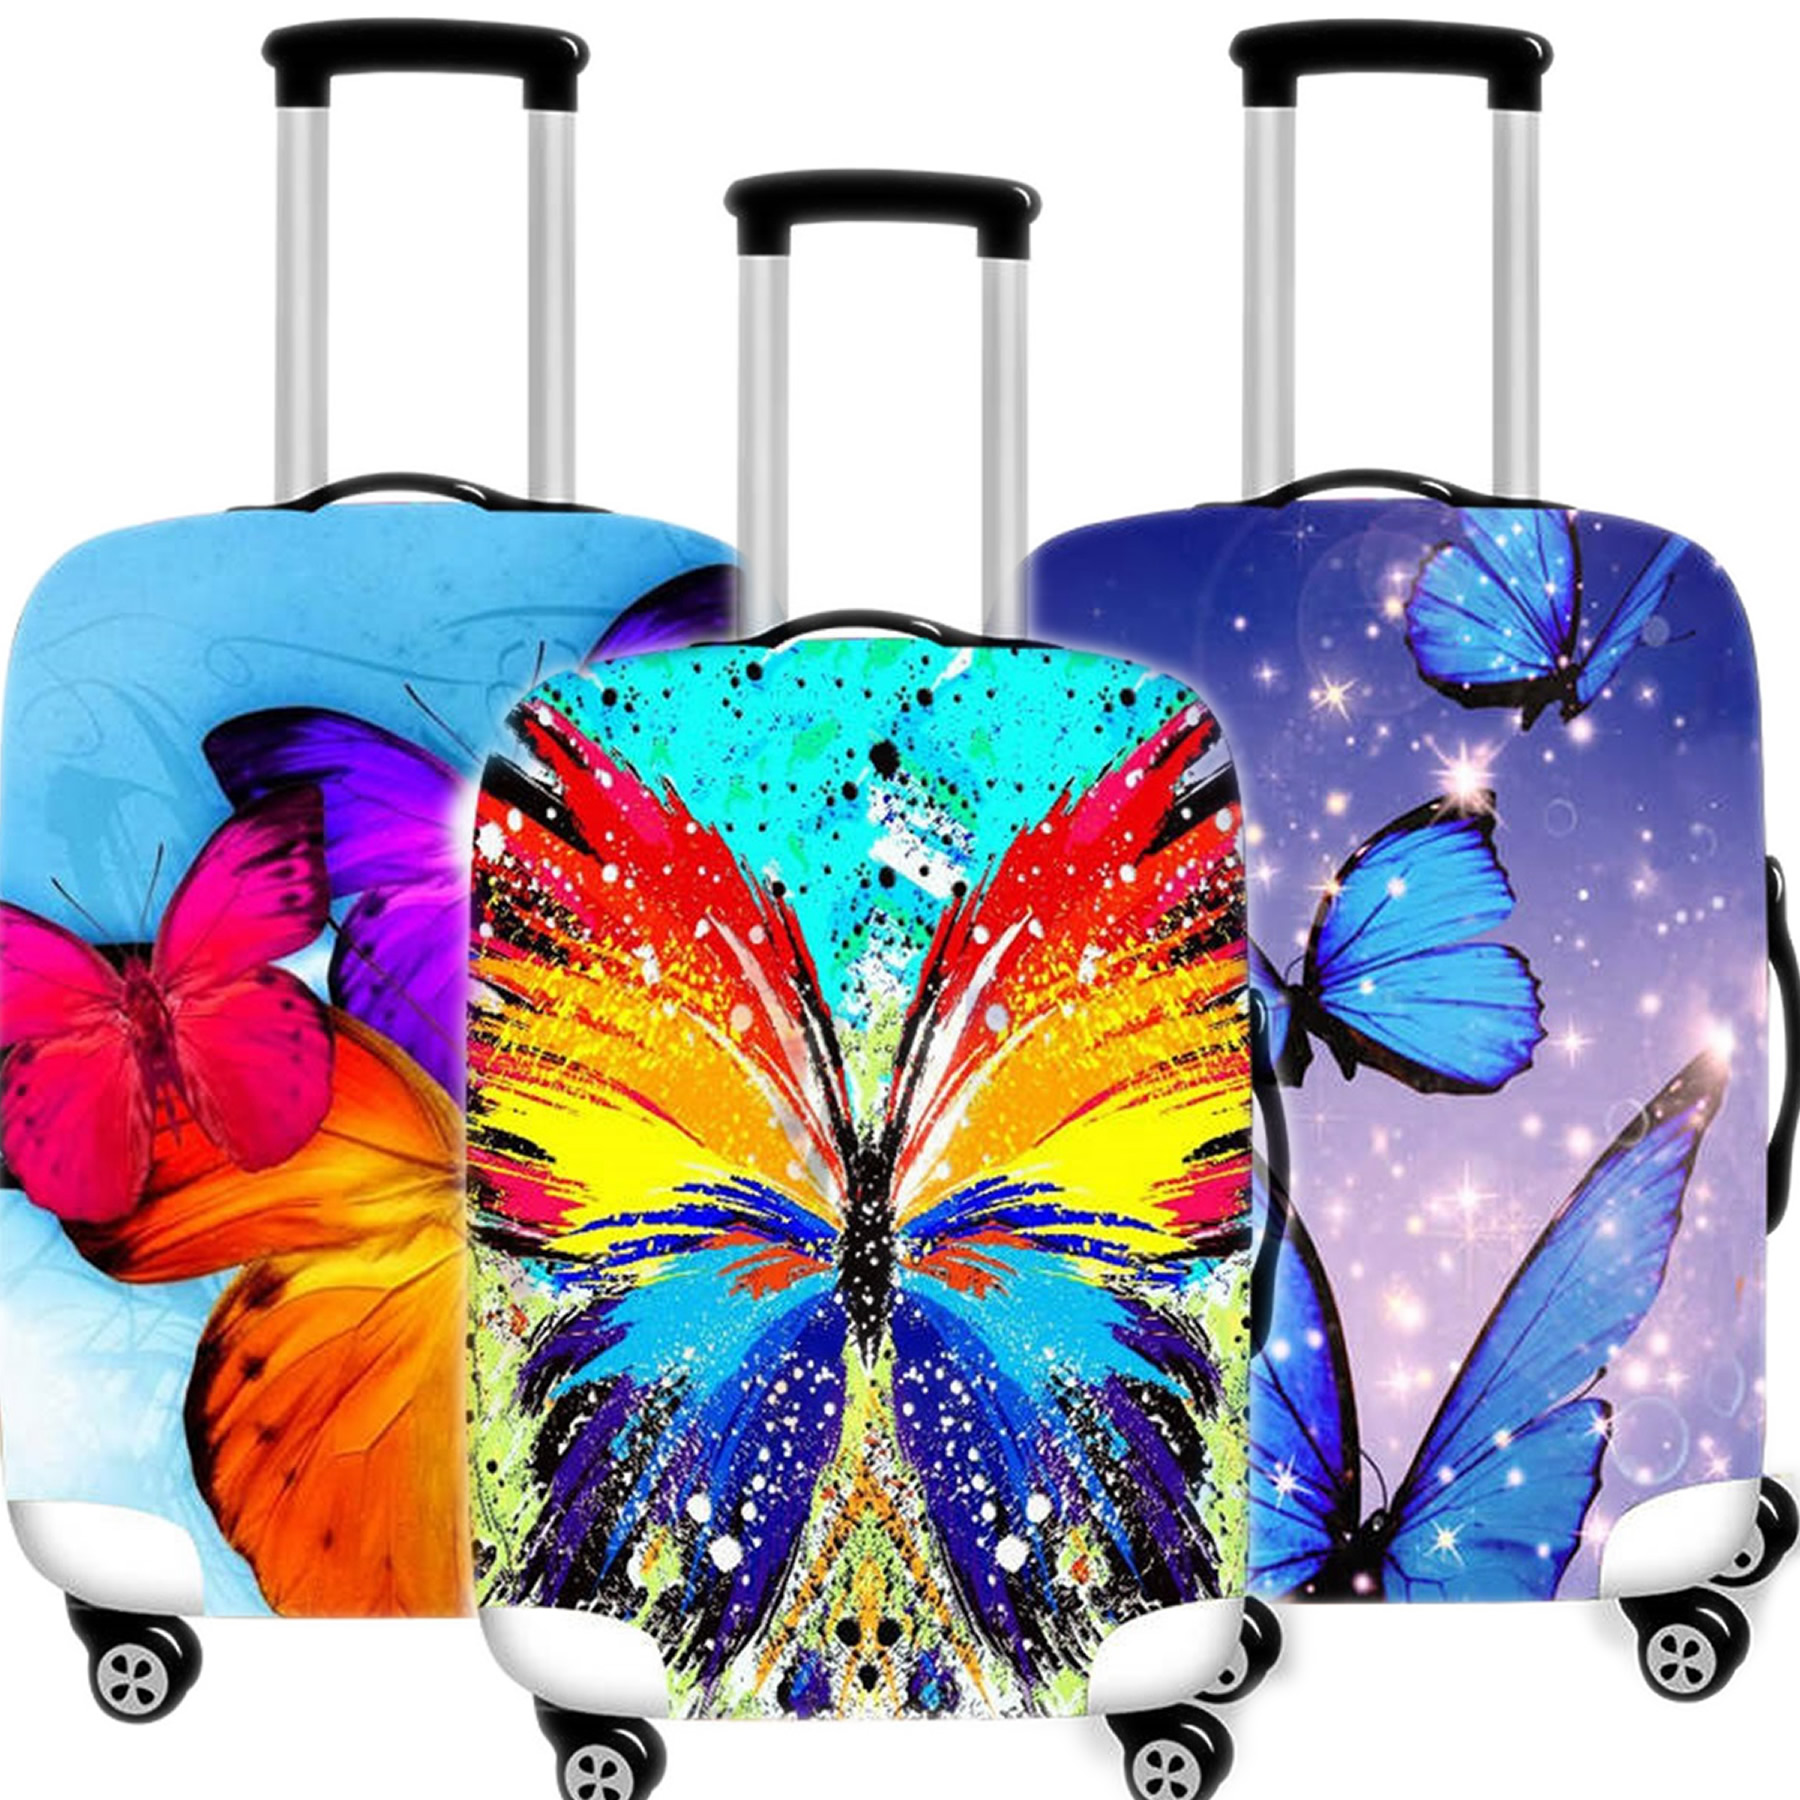 Fashion Thicken Suitcase Case Protective Cover Elastic Travel Luggage Dust Cover Accessories Suitcases Organizer 18 To 32 Inches